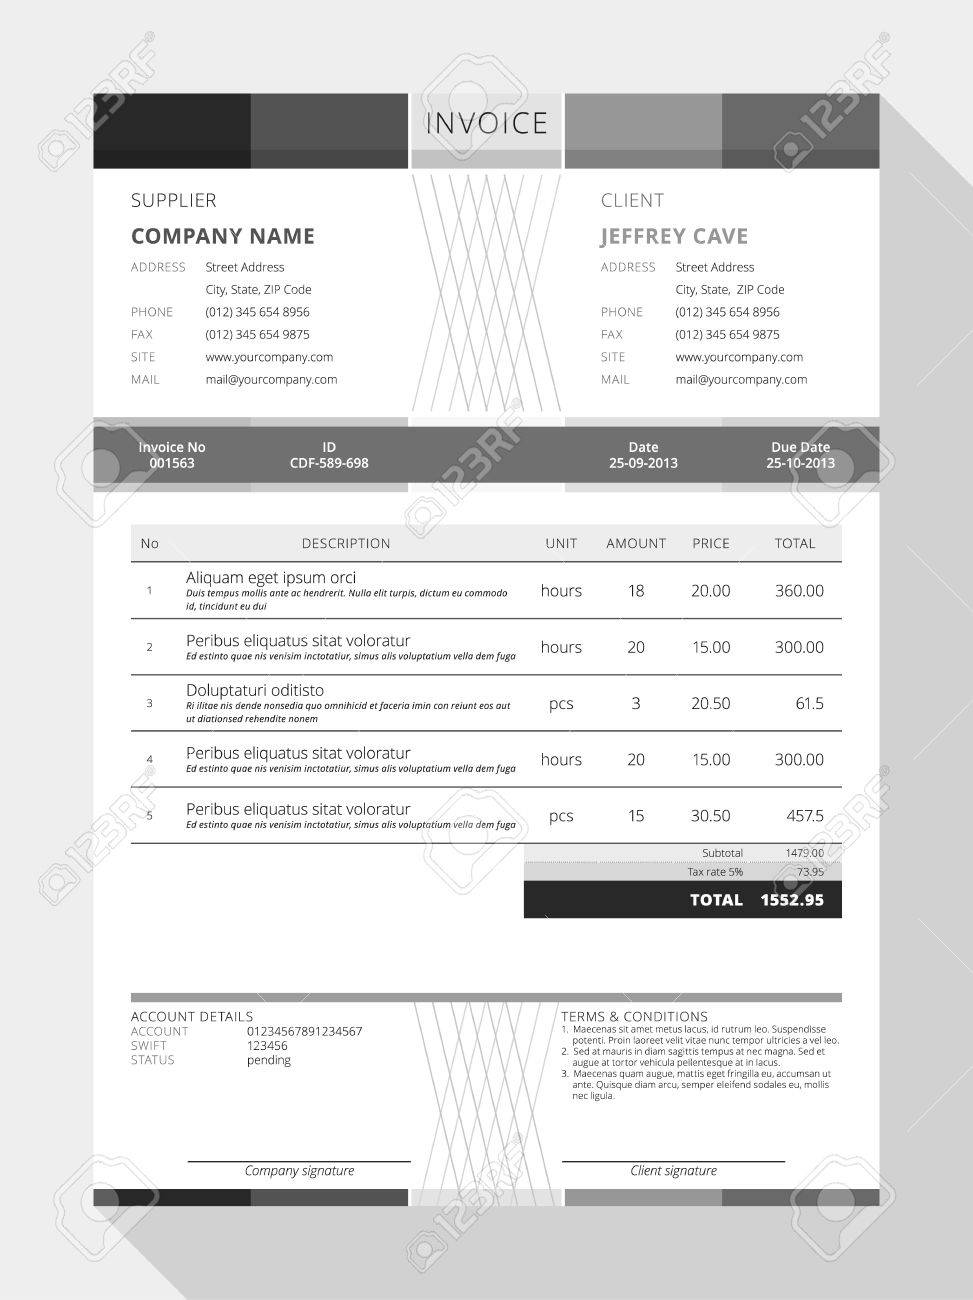 Coolmathgamesus  Pleasing Design An Invoice  Professional Graphic Design Invoice  With Outstanding Vector Customizable Invoice Form Template Design Vector   Design An Invoice With Agreeable Send Invoice Through Paypal Also Invoice Expert In Addition Send Paypal Invoice To Ebay Member And Define Invoice Price As Well As App To Make Invoices Additionally What Is A Tax Invoice Australia From Happytomco With Coolmathgamesus  Outstanding Design An Invoice  Professional Graphic Design Invoice  With Agreeable Vector Customizable Invoice Form Template Design Vector   Design An Invoice And Pleasing Send Invoice Through Paypal Also Invoice Expert In Addition Send Paypal Invoice To Ebay Member From Happytomco